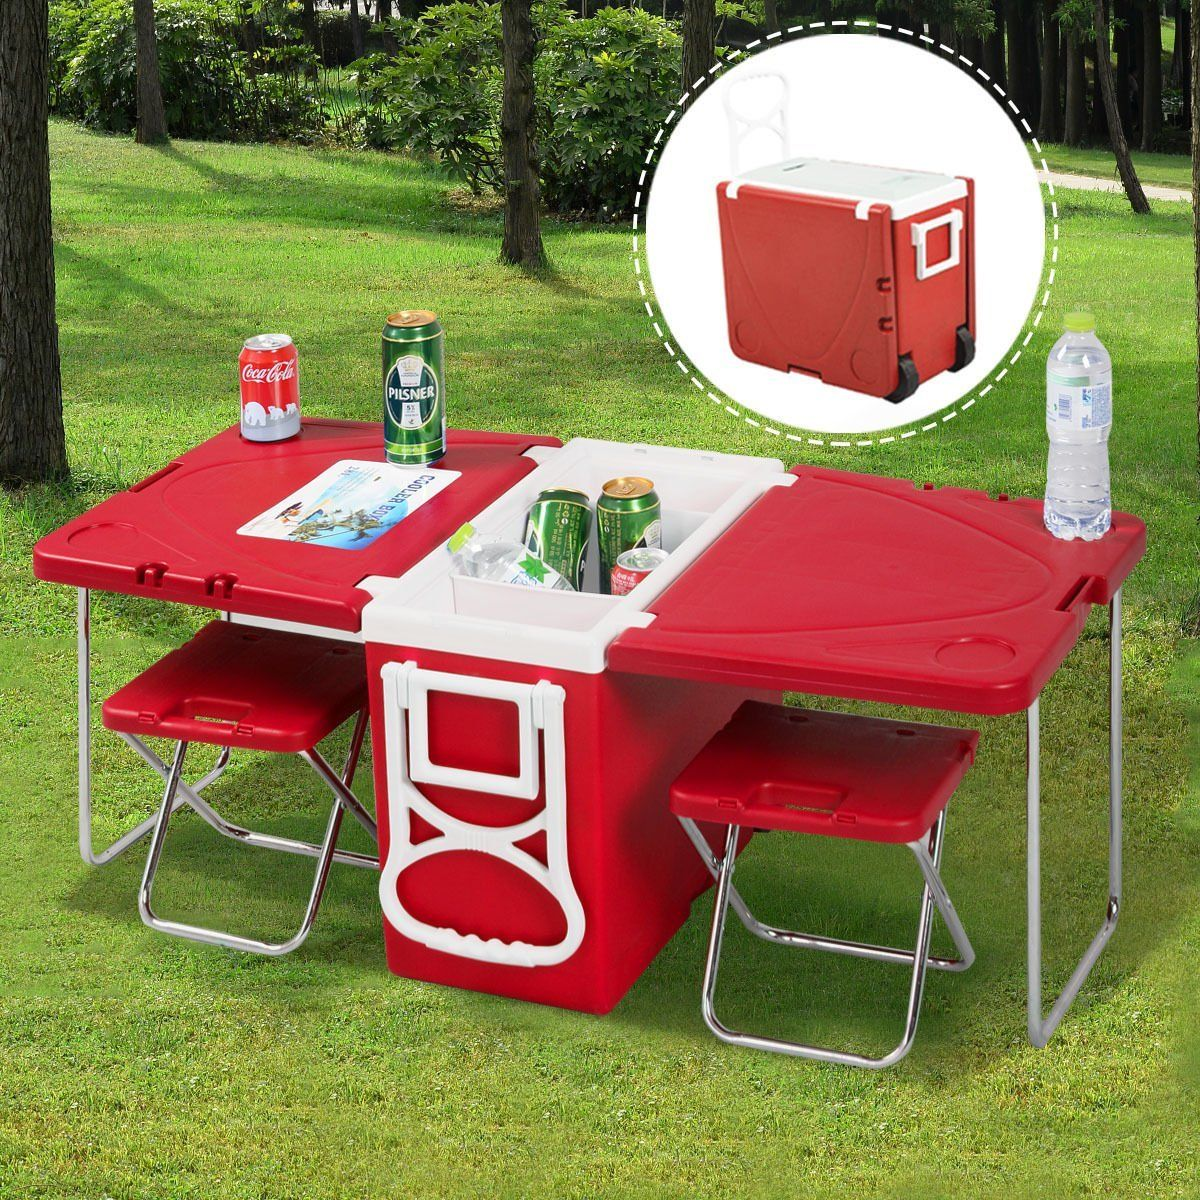 amazon kitchen chairs Amazon com Giantex Multi Function Rolling Cooler Picnic Camping Outdoor w Table